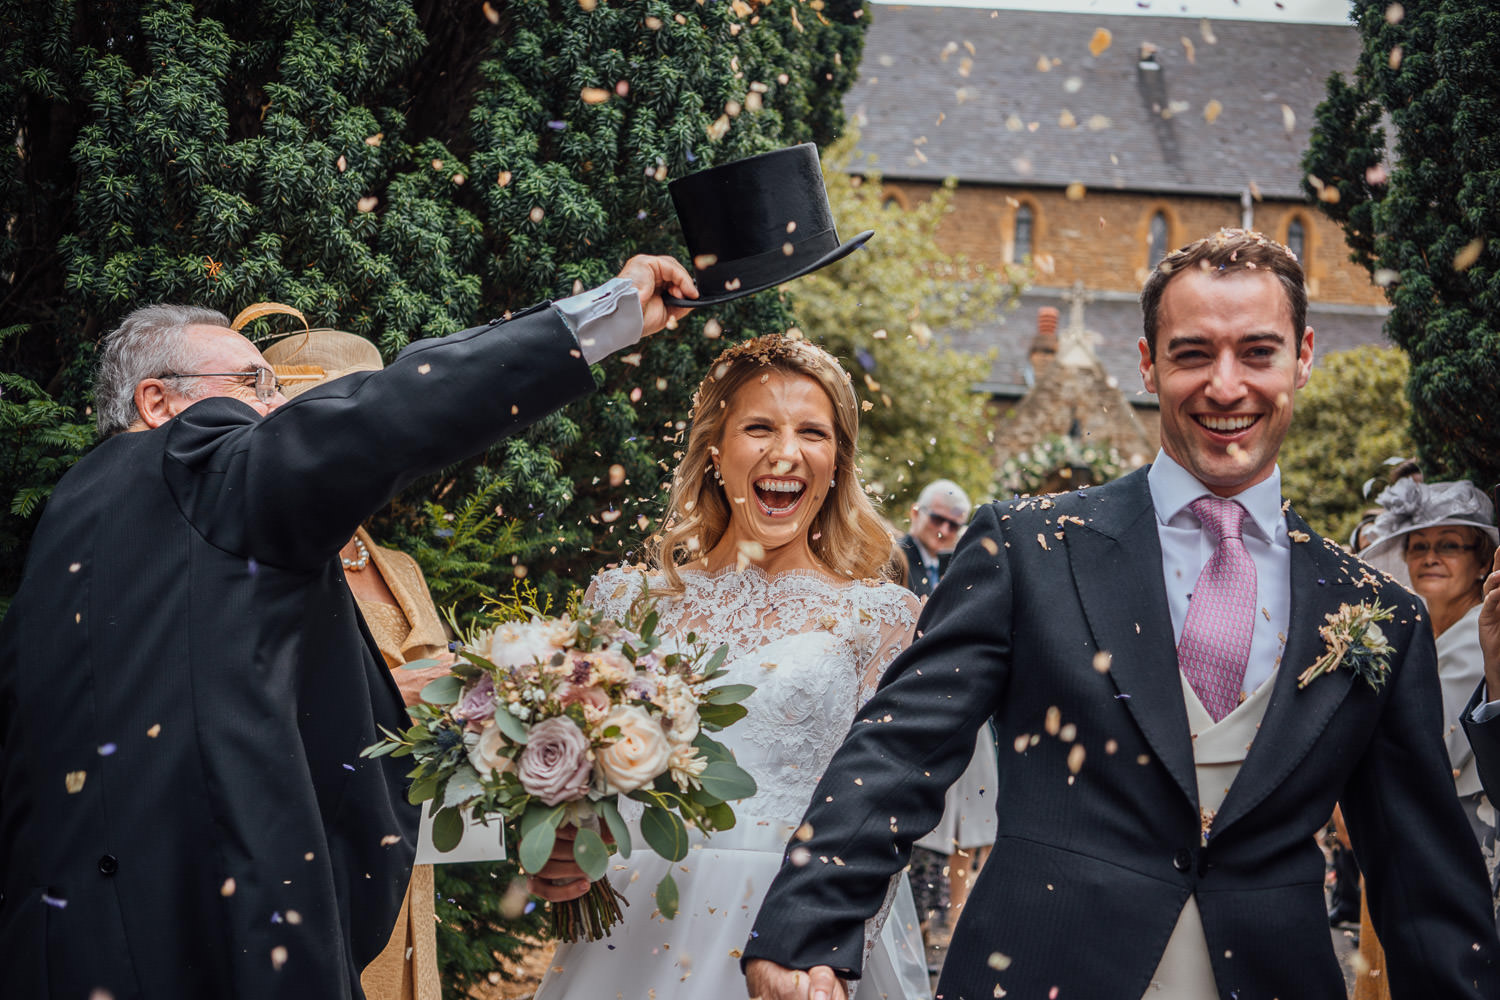 confetti shower in cool london wedding